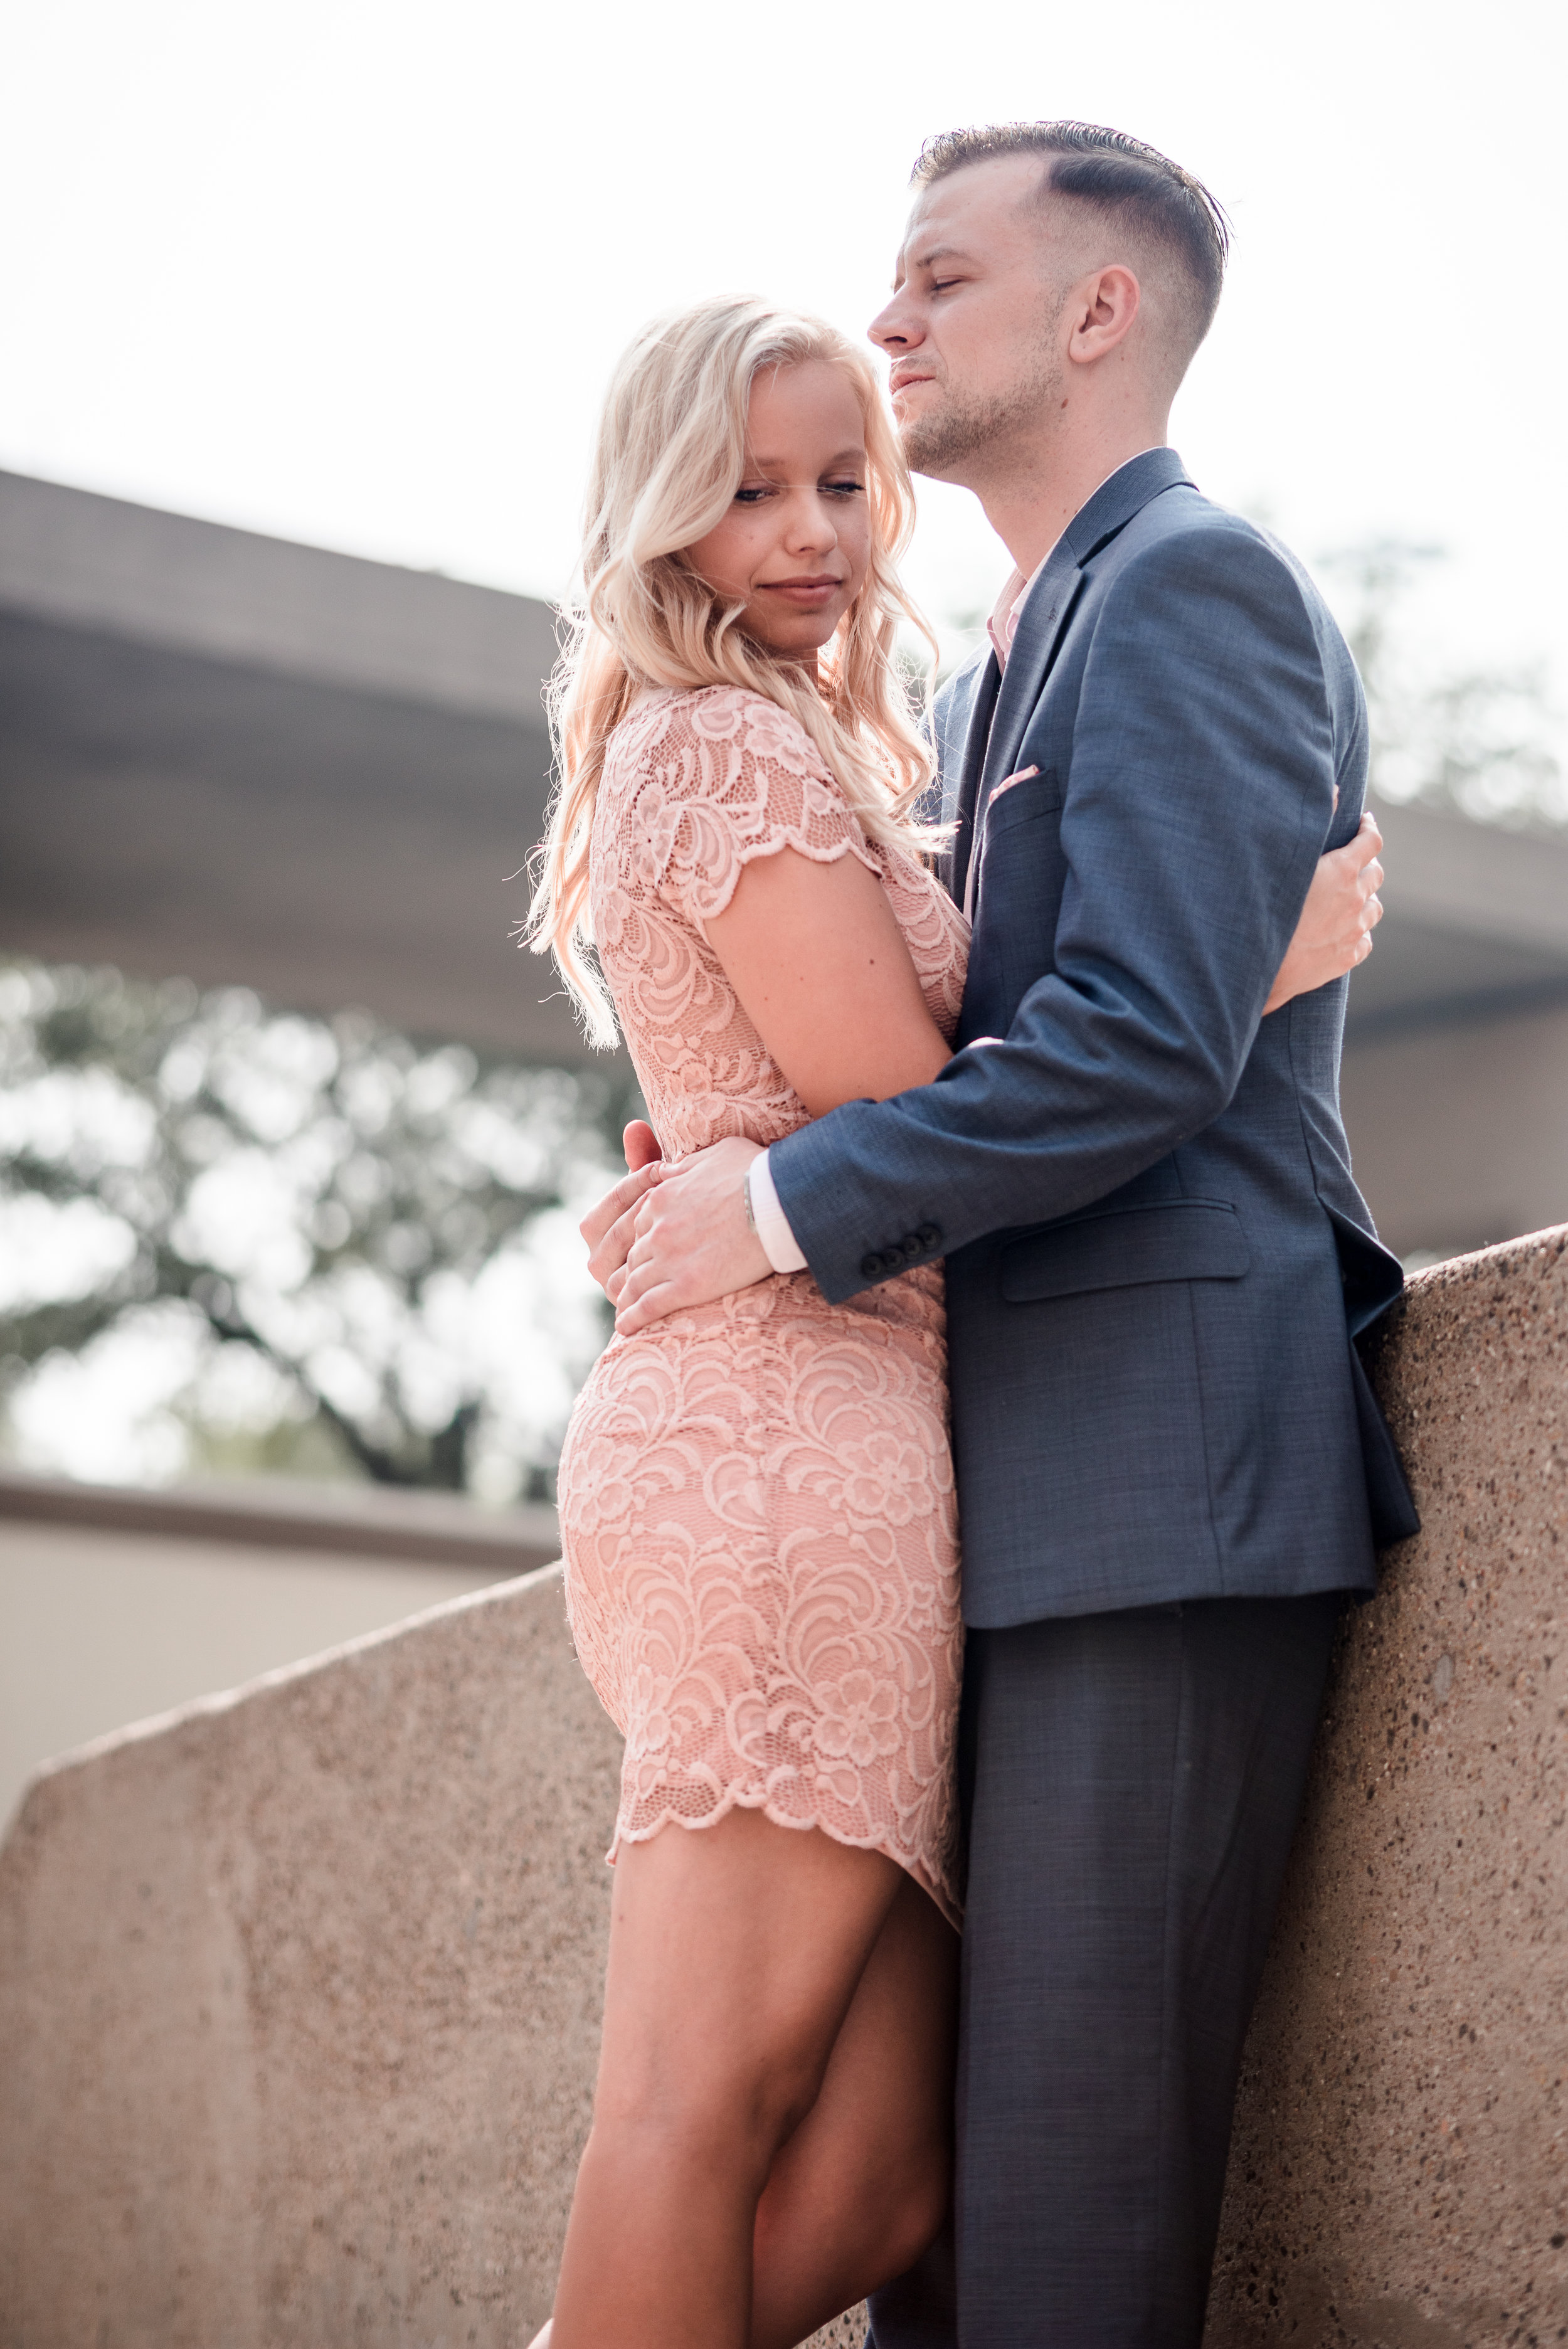 st-louis-wedding-photographer-dallas-engagement-13.jpg